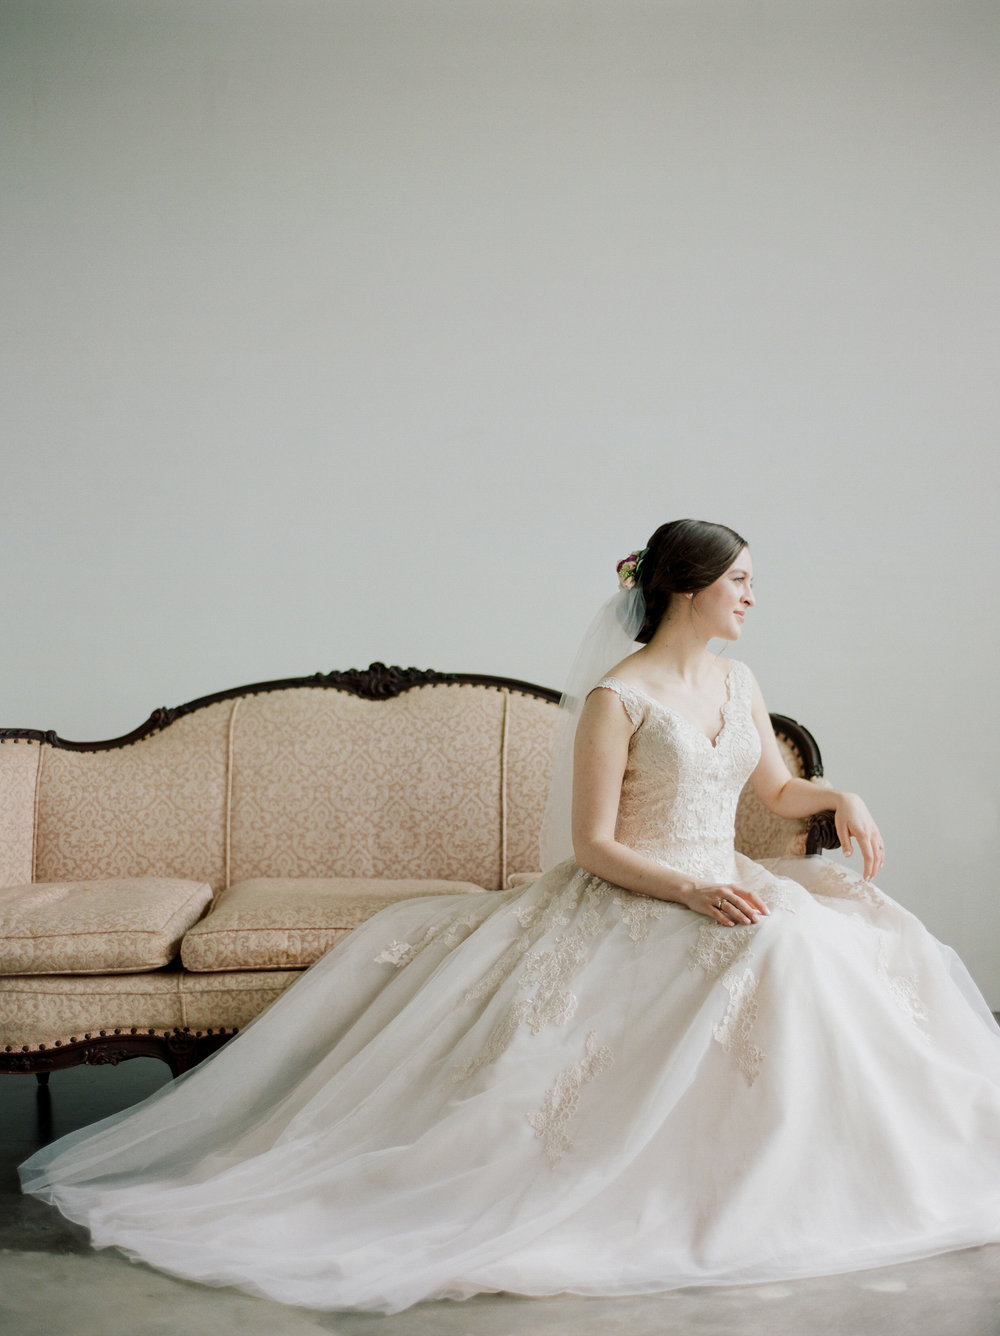 Houston-Wedding-Photographer-Austin-Dallas-New-York-California-Destination-Wedding-Film-Bridal-Portrait-Studio-12.jpg